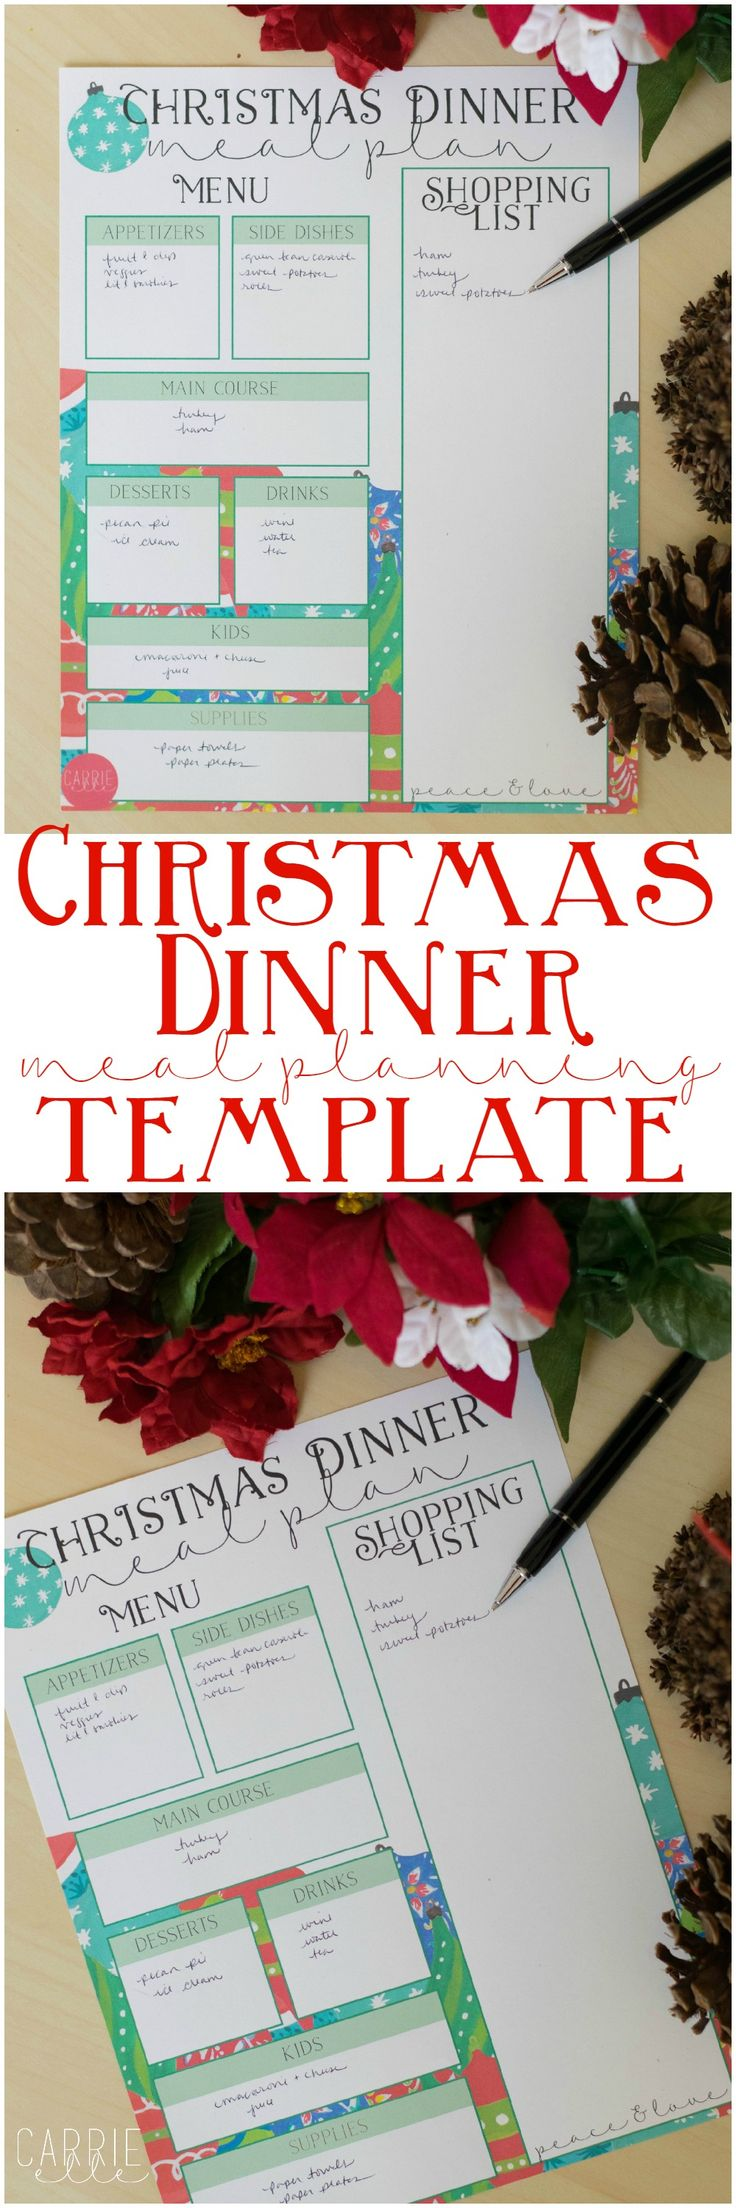 Plan your Christmas dinner in style! Planning will help you reduce stress and chaos and save money, too. Get your free printable Christmas dinner meal planning page here!